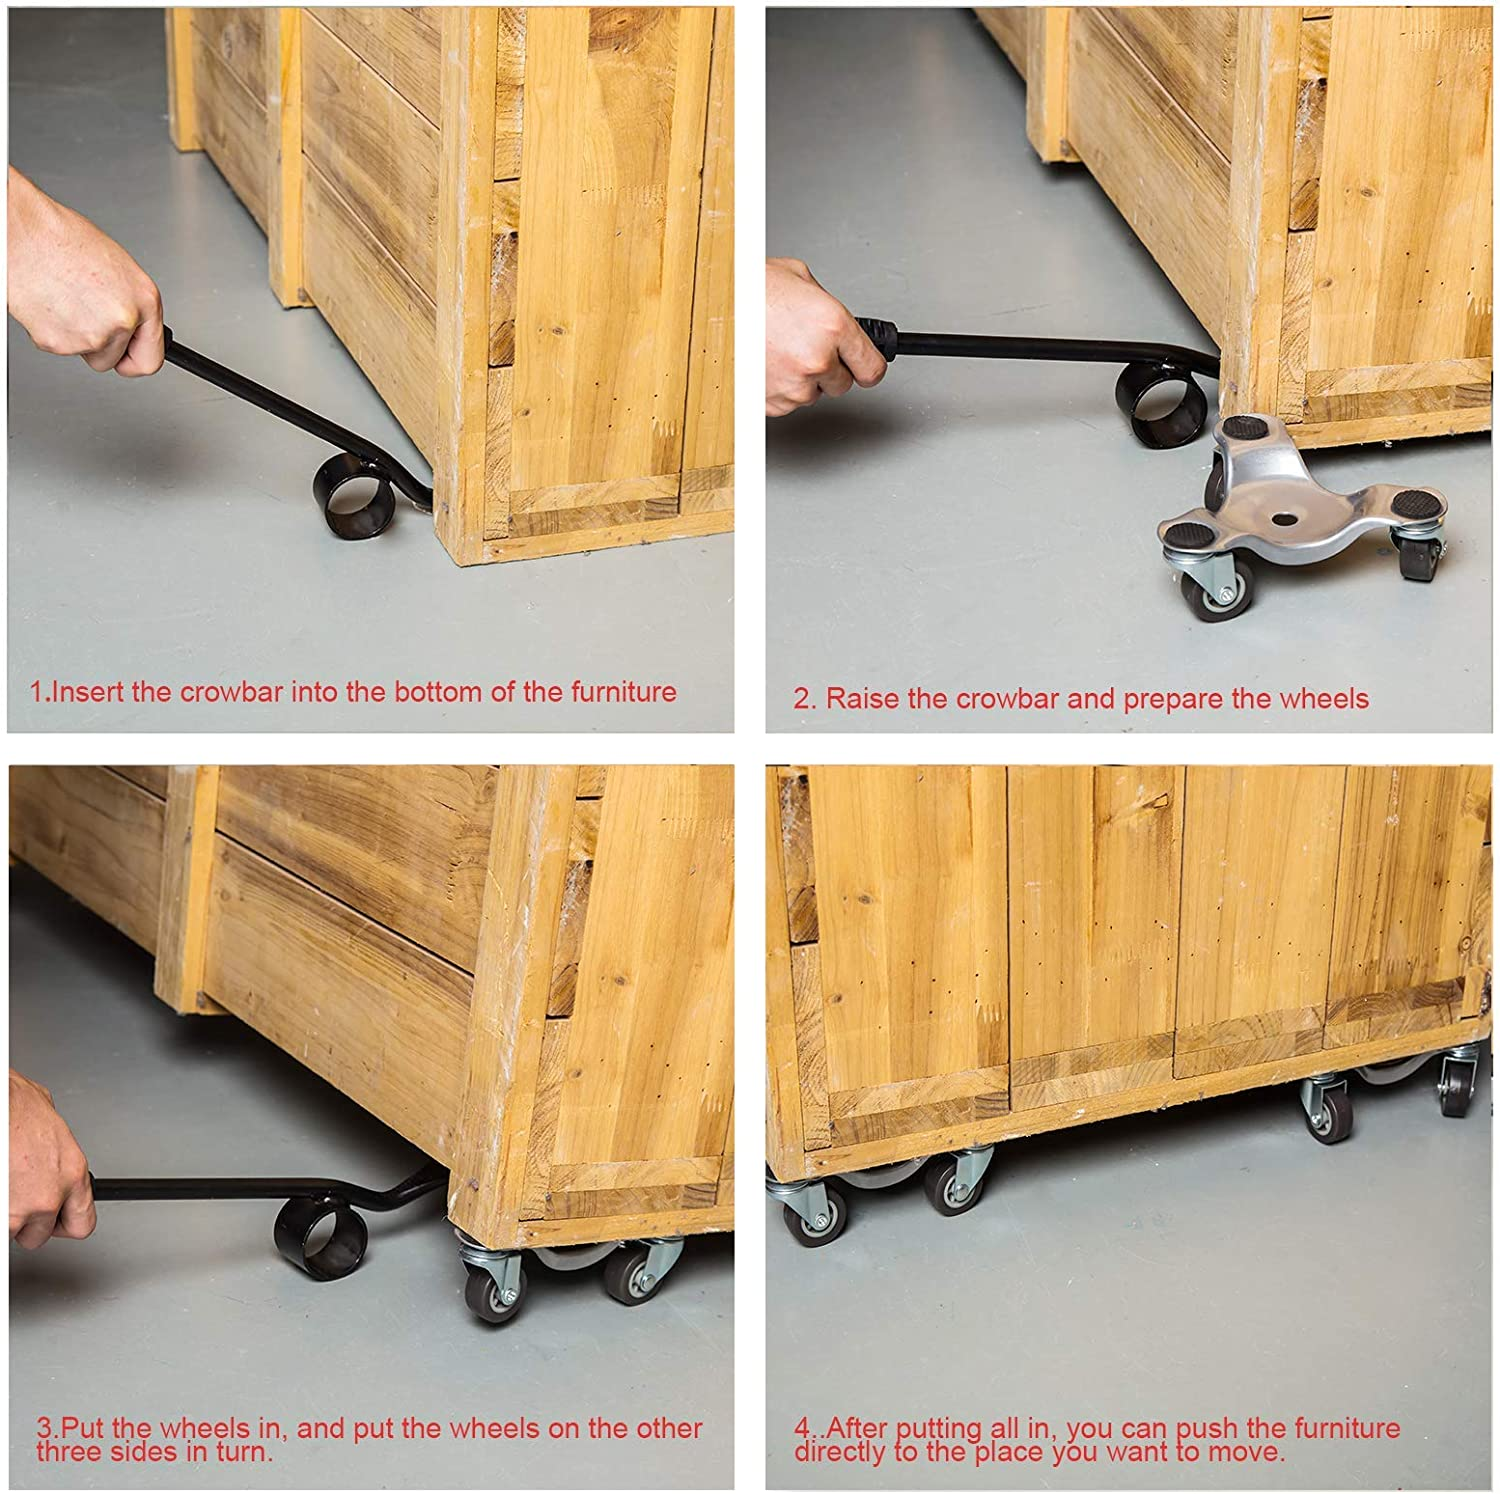 Furniture Dolly with Casters Triangle Iron Mover Heavy Moving Tool with Universal Wheel Portable Mover with Crowbar Three Wheel Mover Dolly for Furniture Heavy Objects 4 Packs with 1 Crowba Red